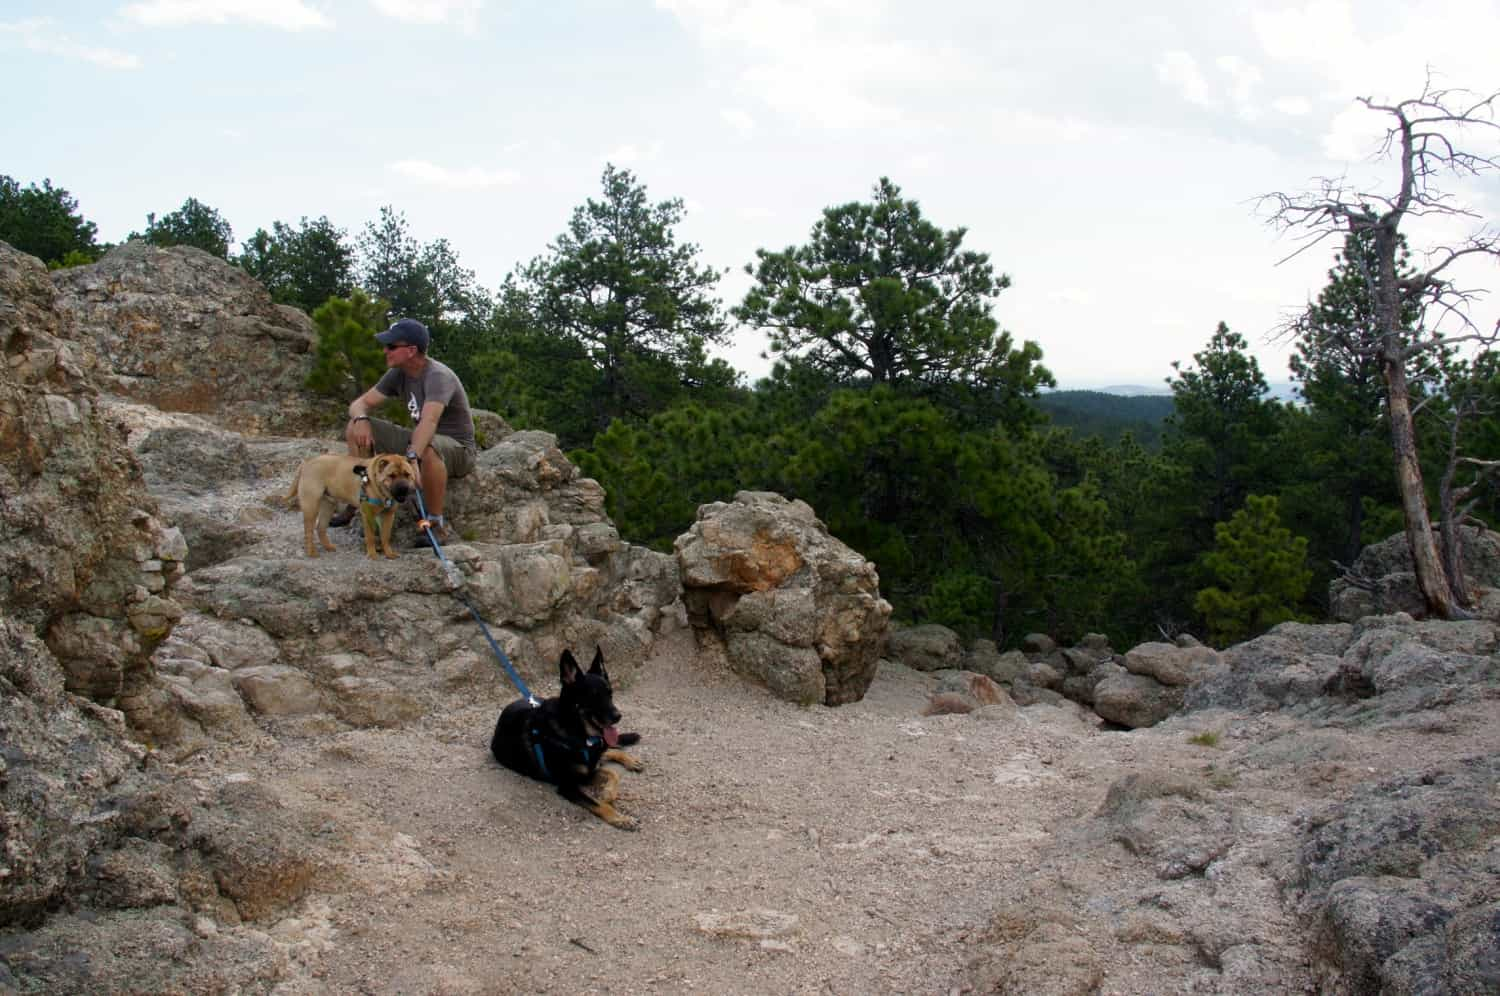 The Boys at Lover's Leap - Custer, SD